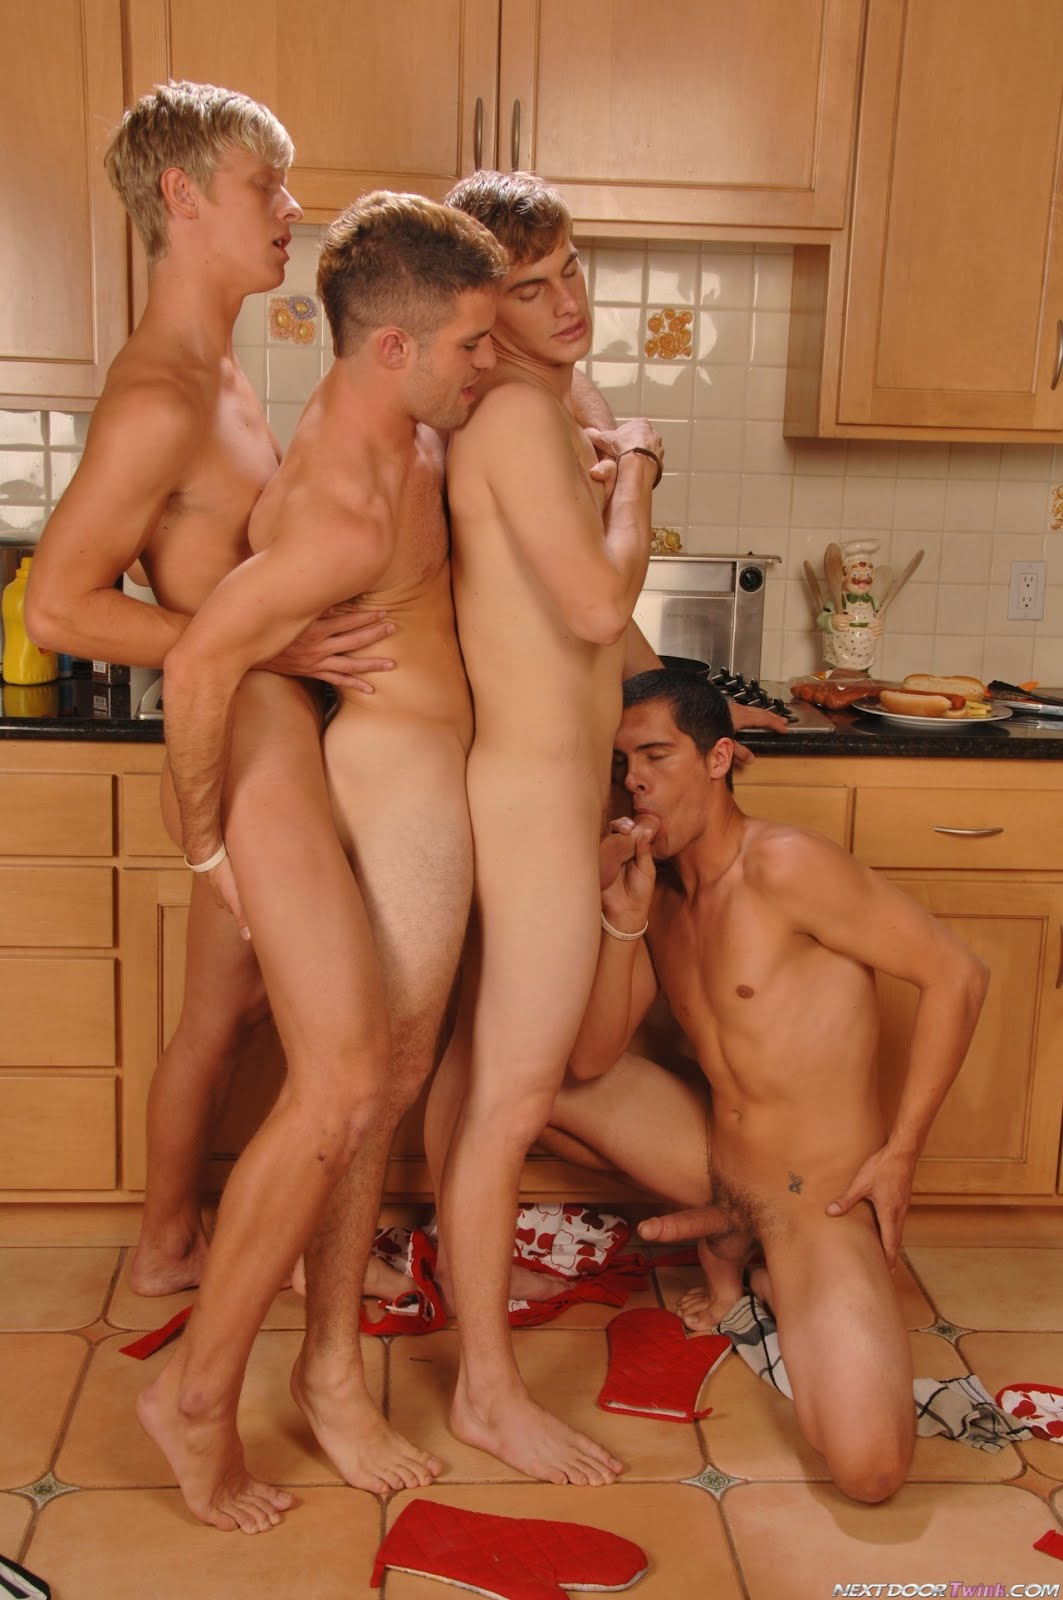 Girls jack off man video clip